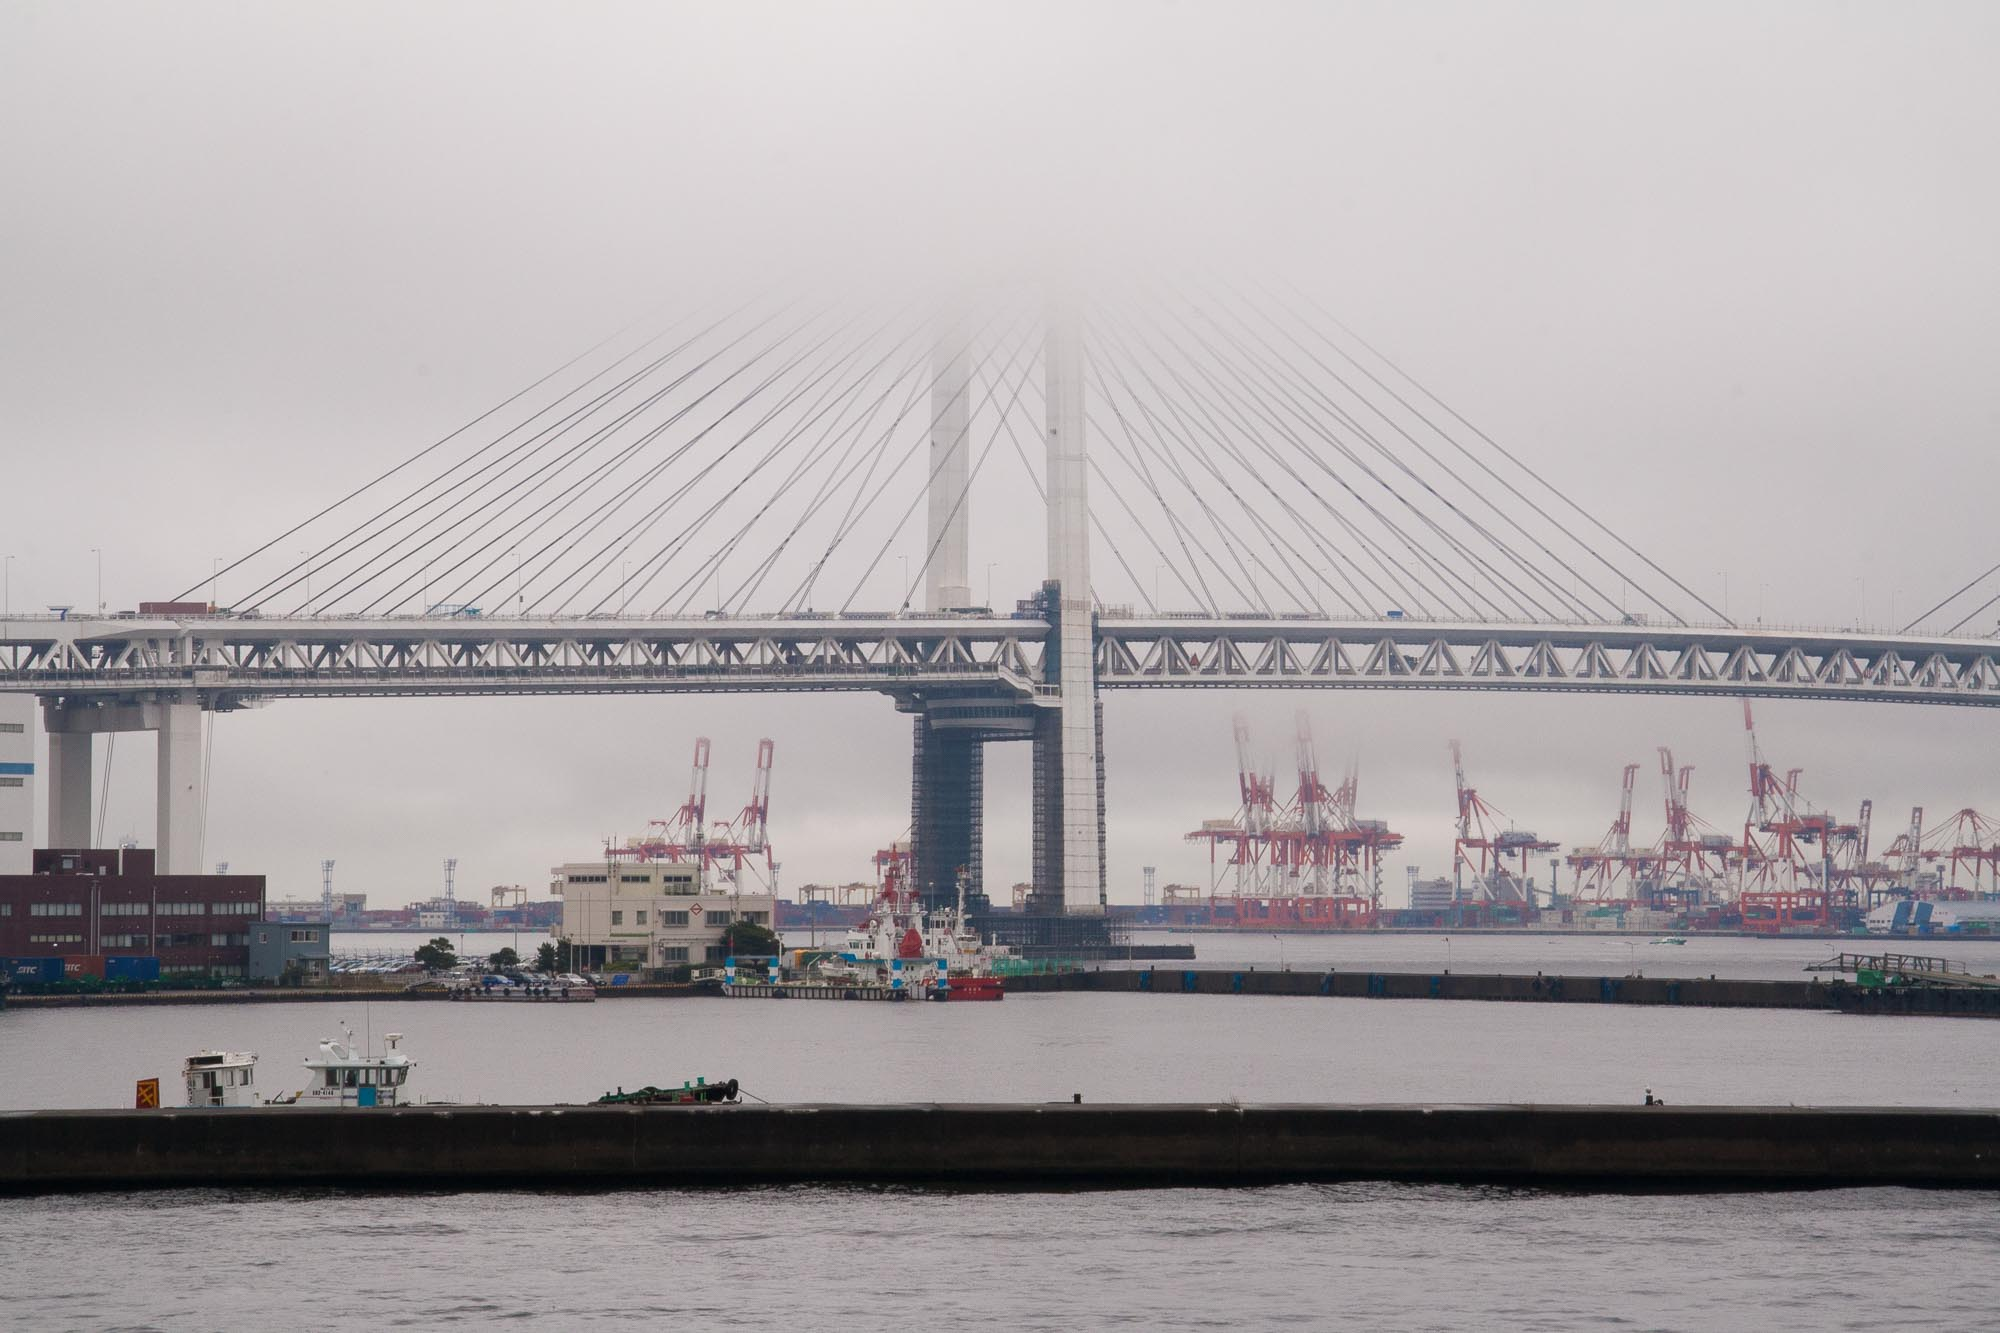 Yokohama Bay Bridge, with Honmoku Pier in the background.